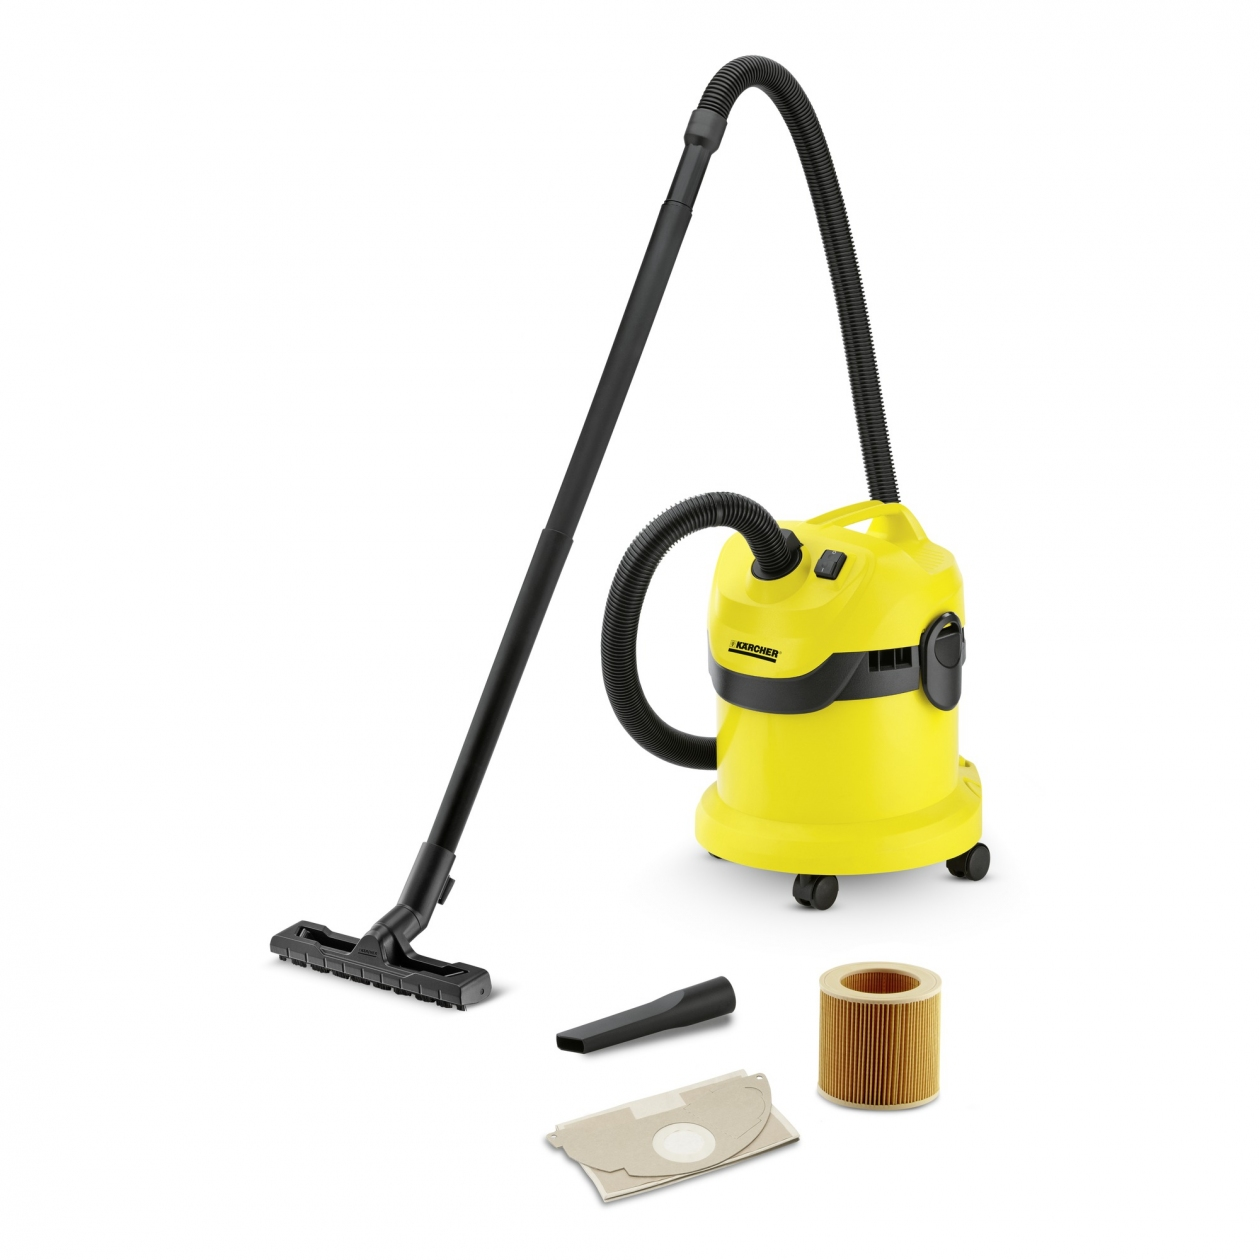 karcher wd 2 wet dry vacuum cleaner a1 pressure washers. Black Bedroom Furniture Sets. Home Design Ideas